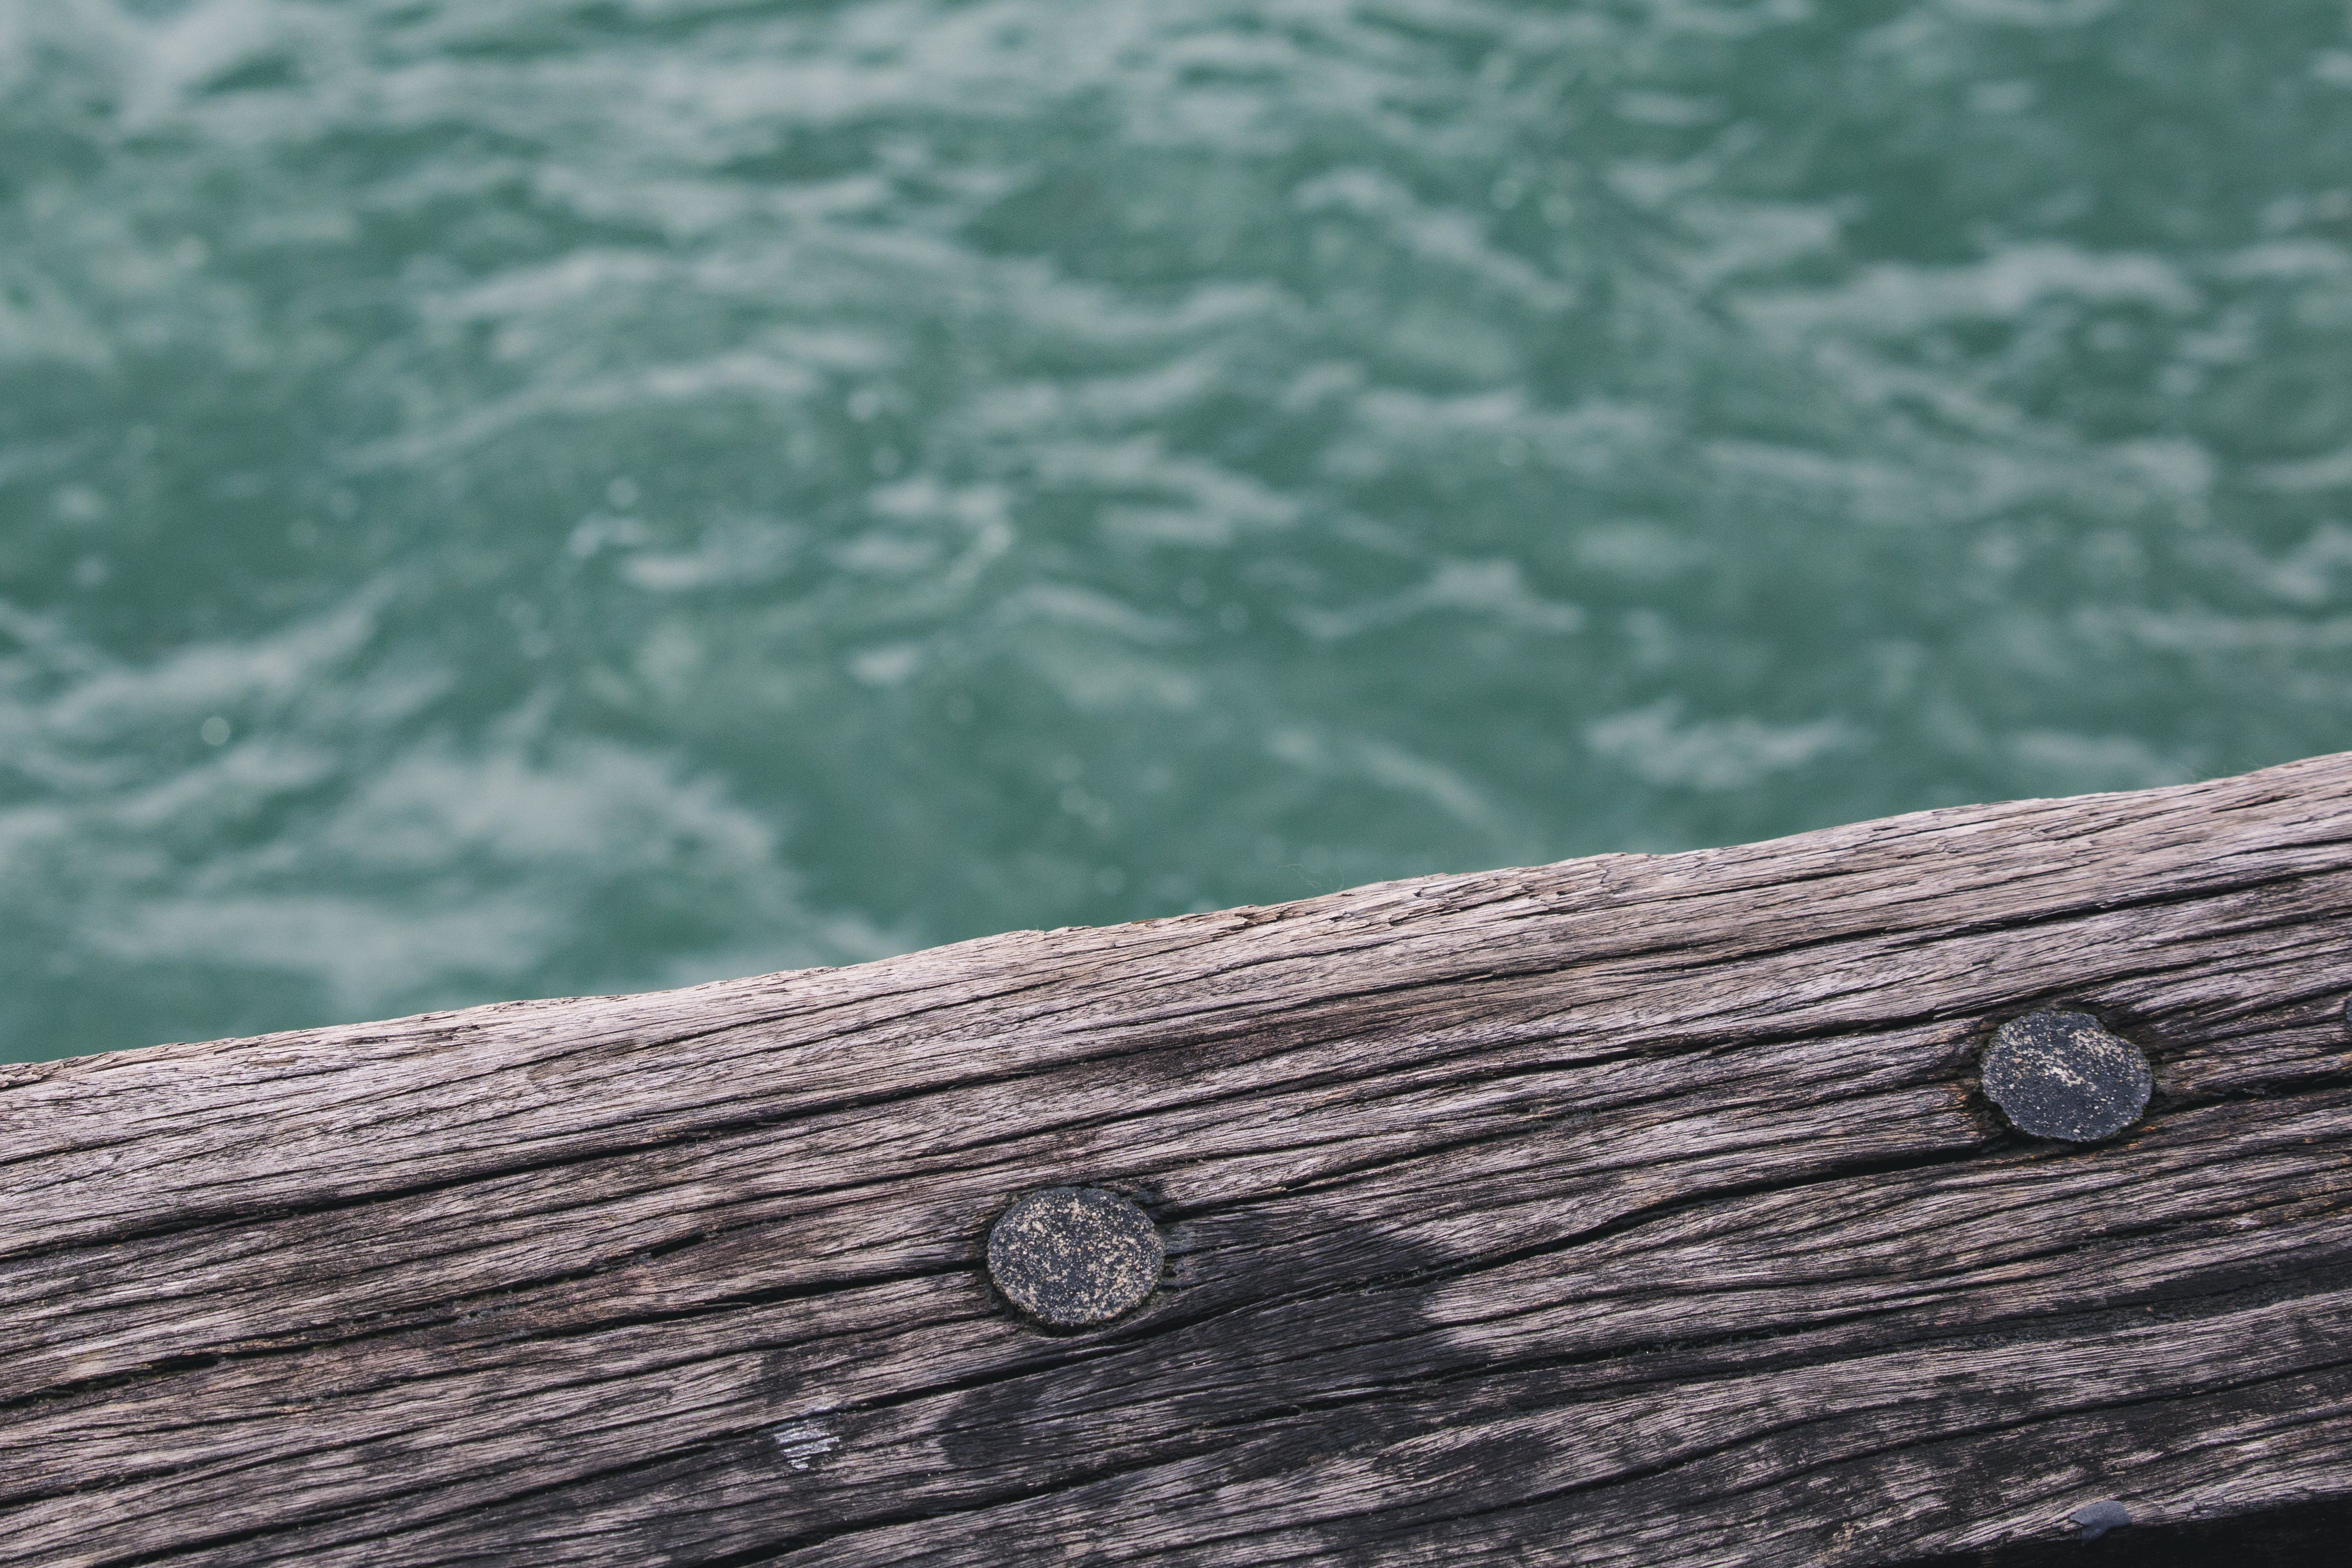 Free stock photo of wood, water, texture, blur